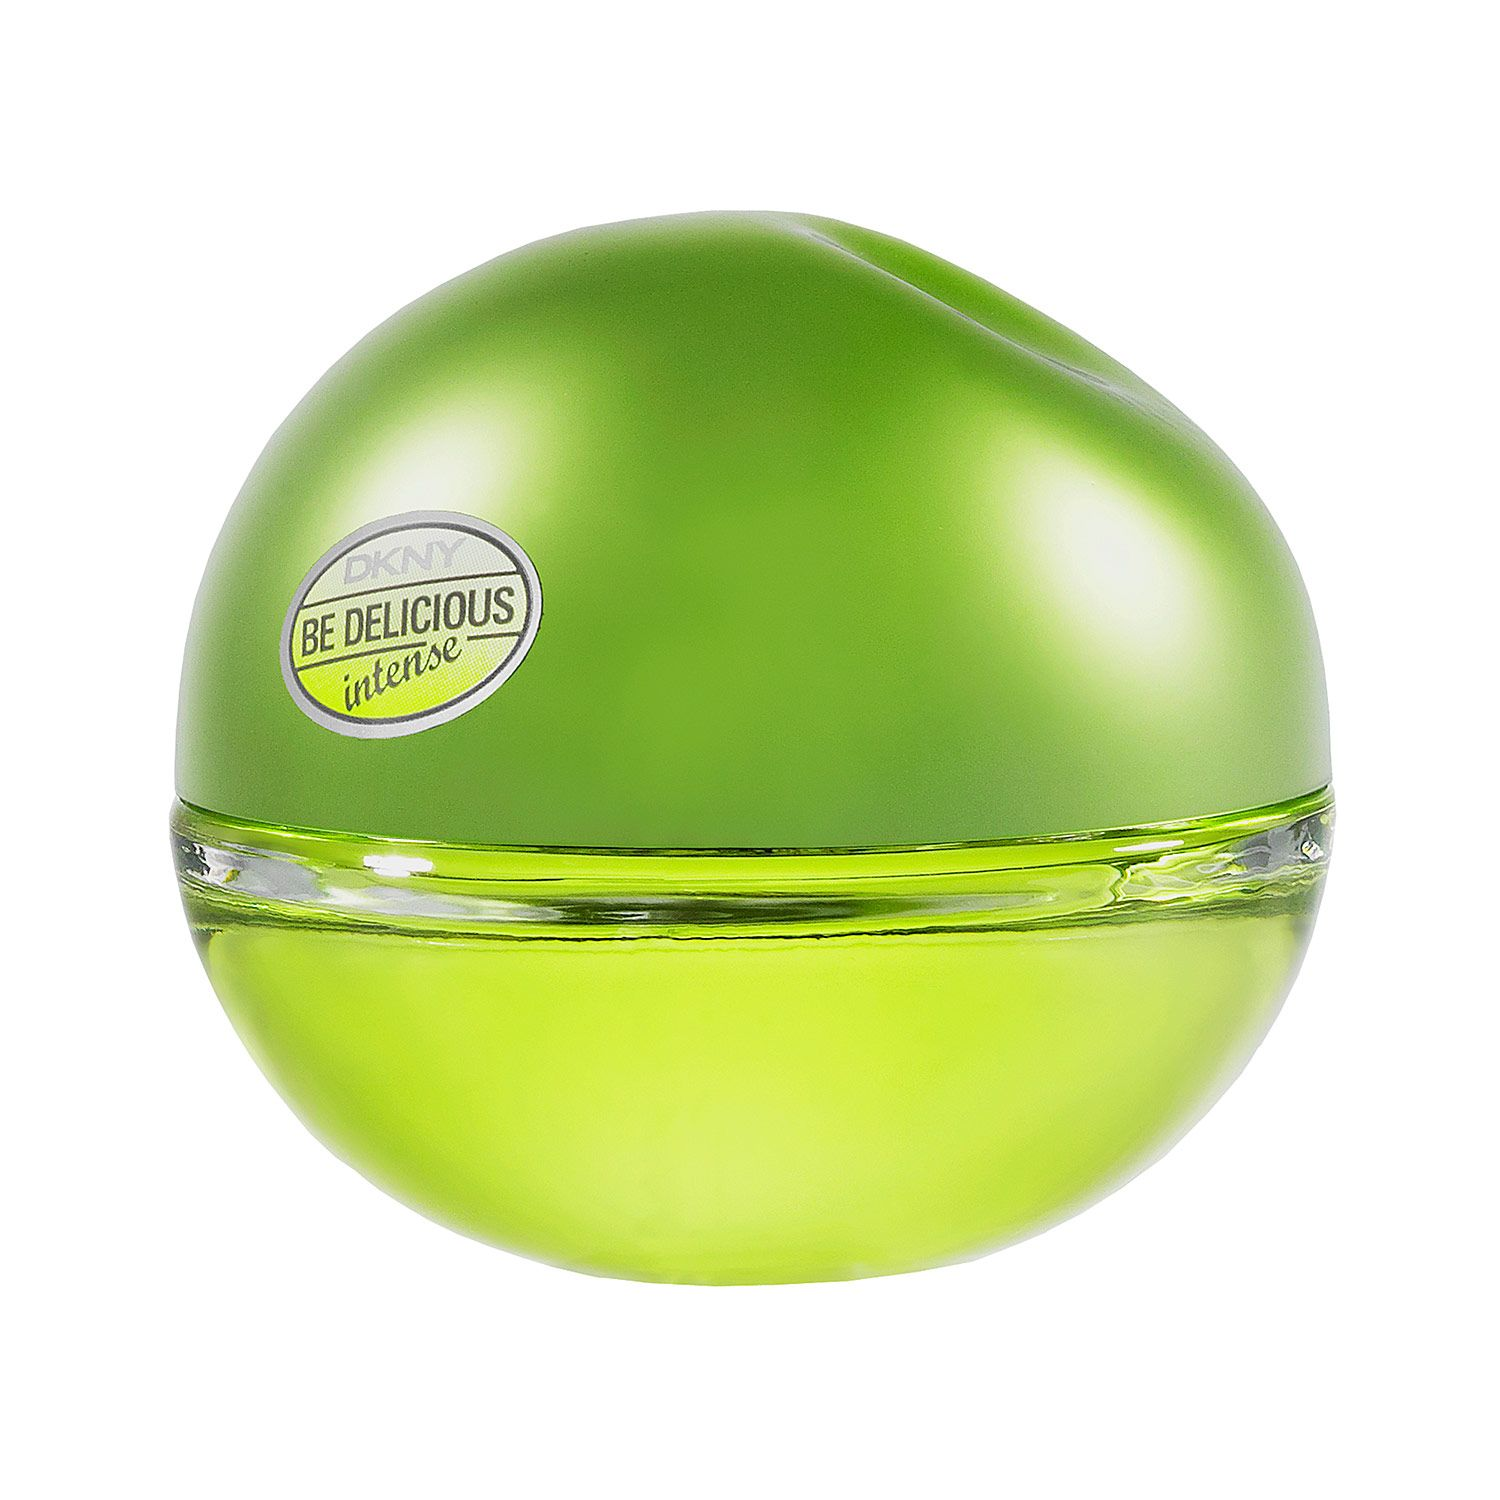 Dkny Be Delicious Eau So Intense Perfume For Women Sephora My